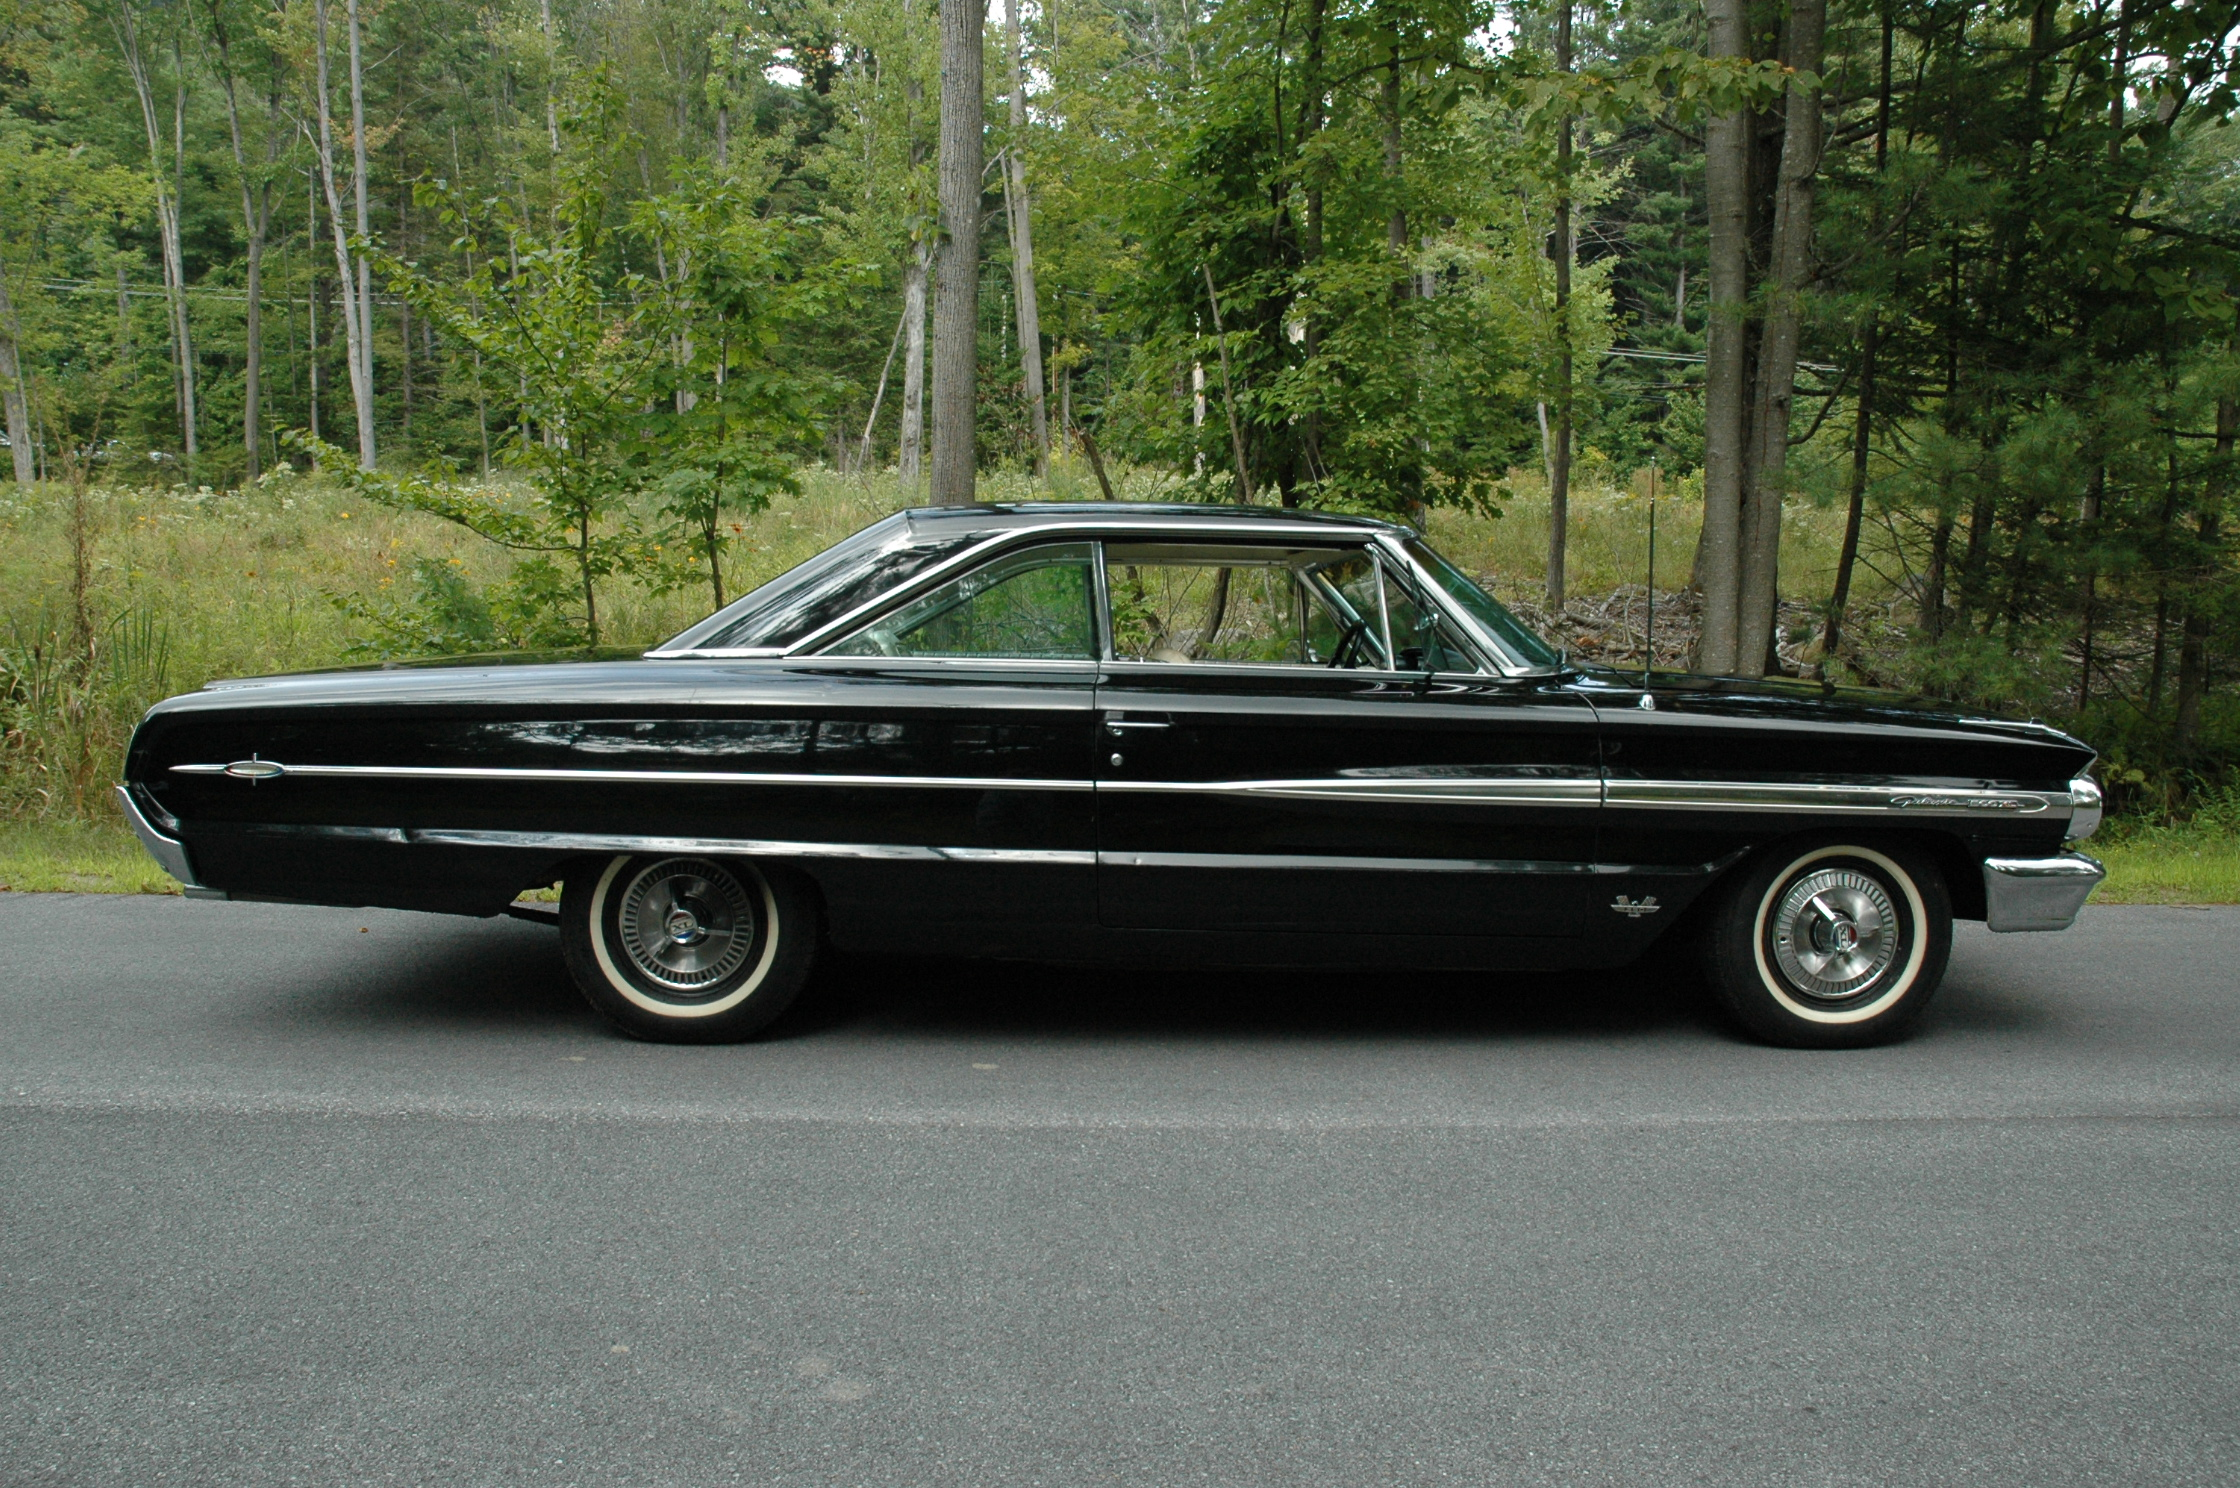 Ford galaxie 1964 photo - 1